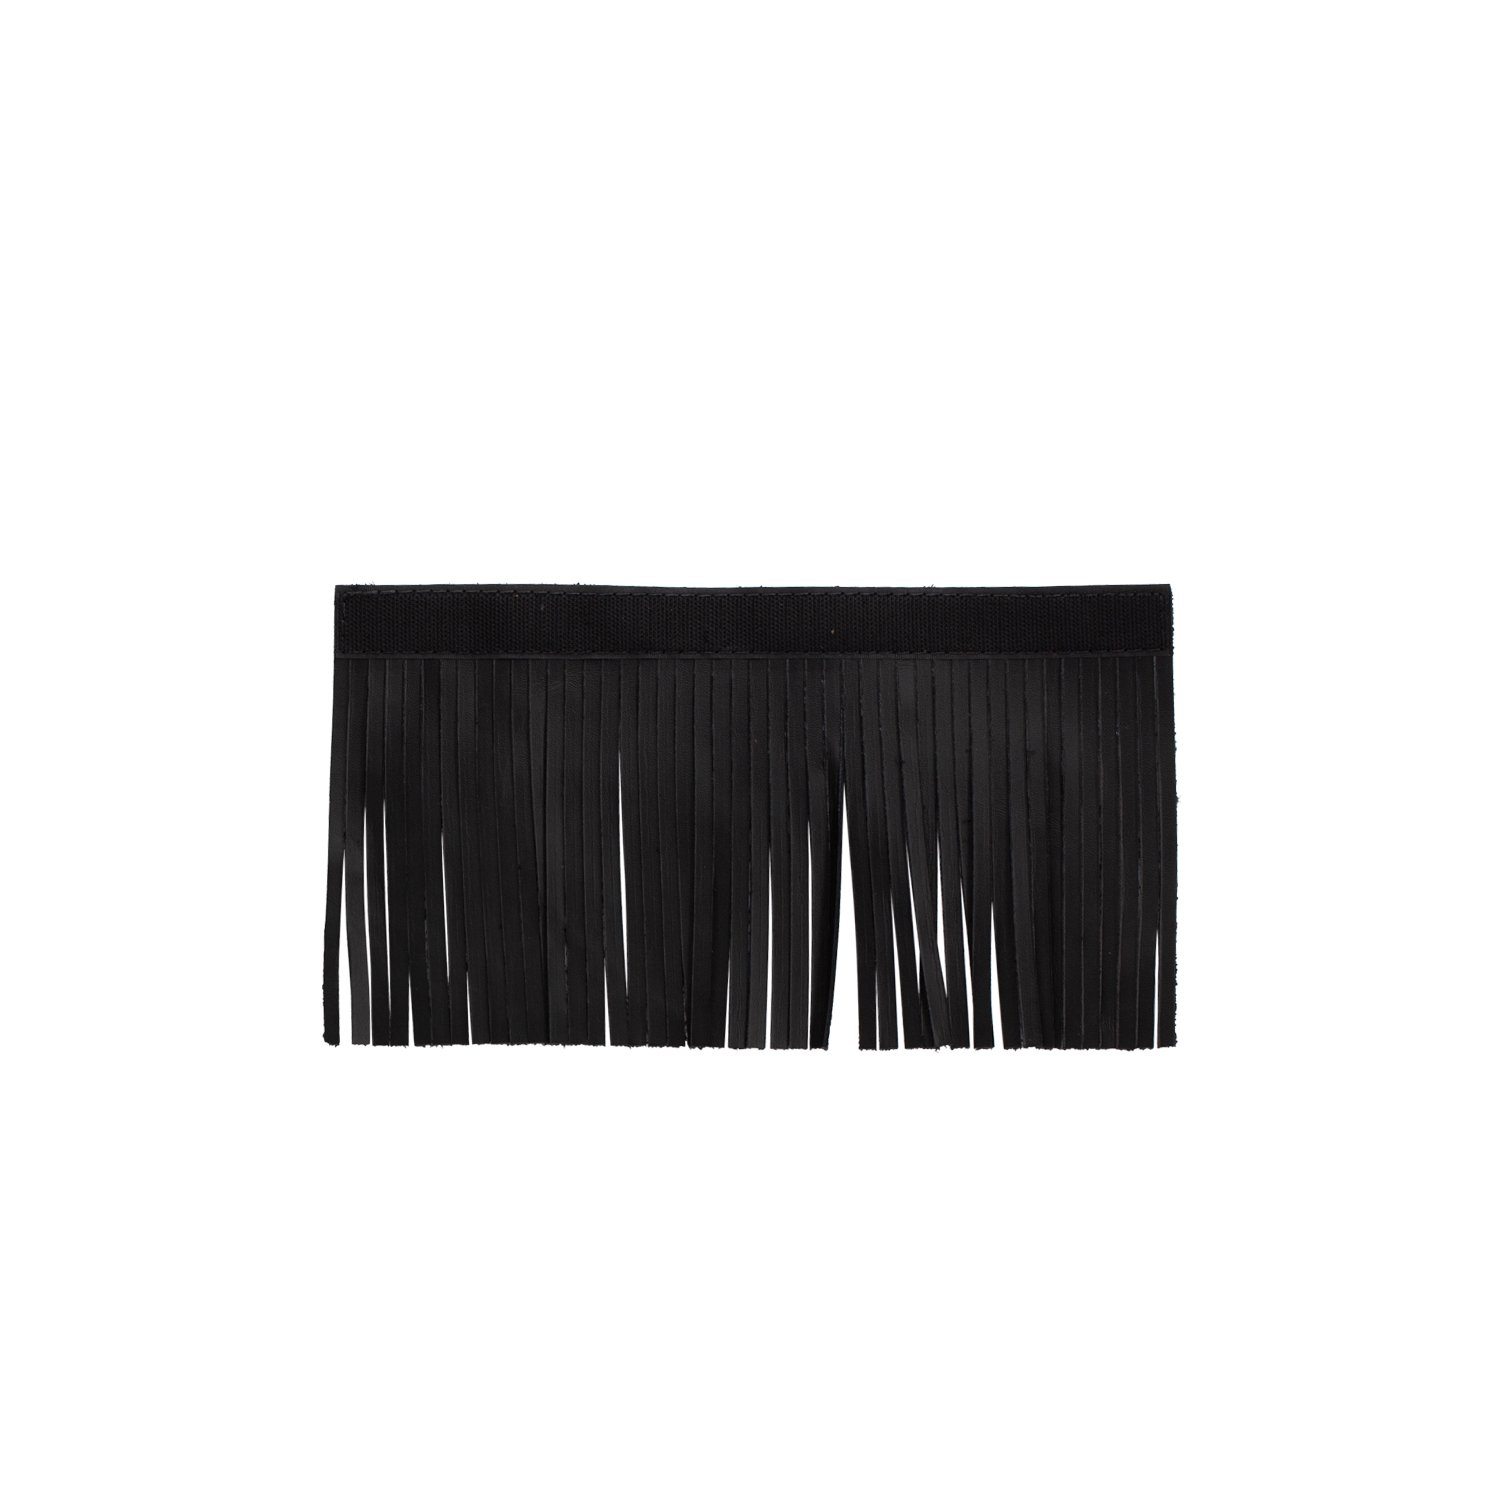 Genuine Leather Upper Saddlebag Fringe – Black